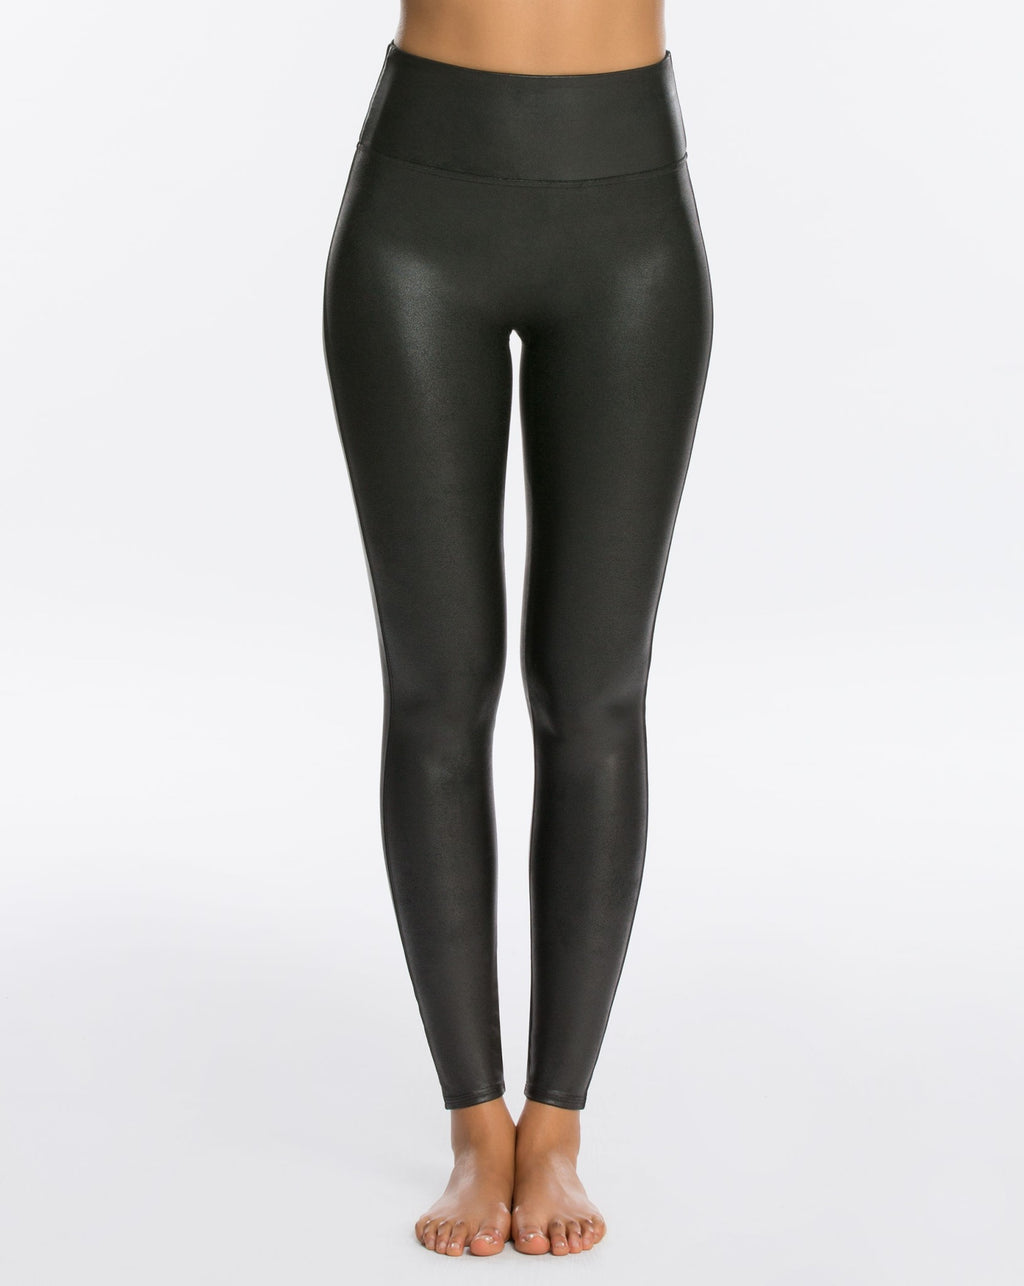 Spanx PETITE Faux Leather Leggings